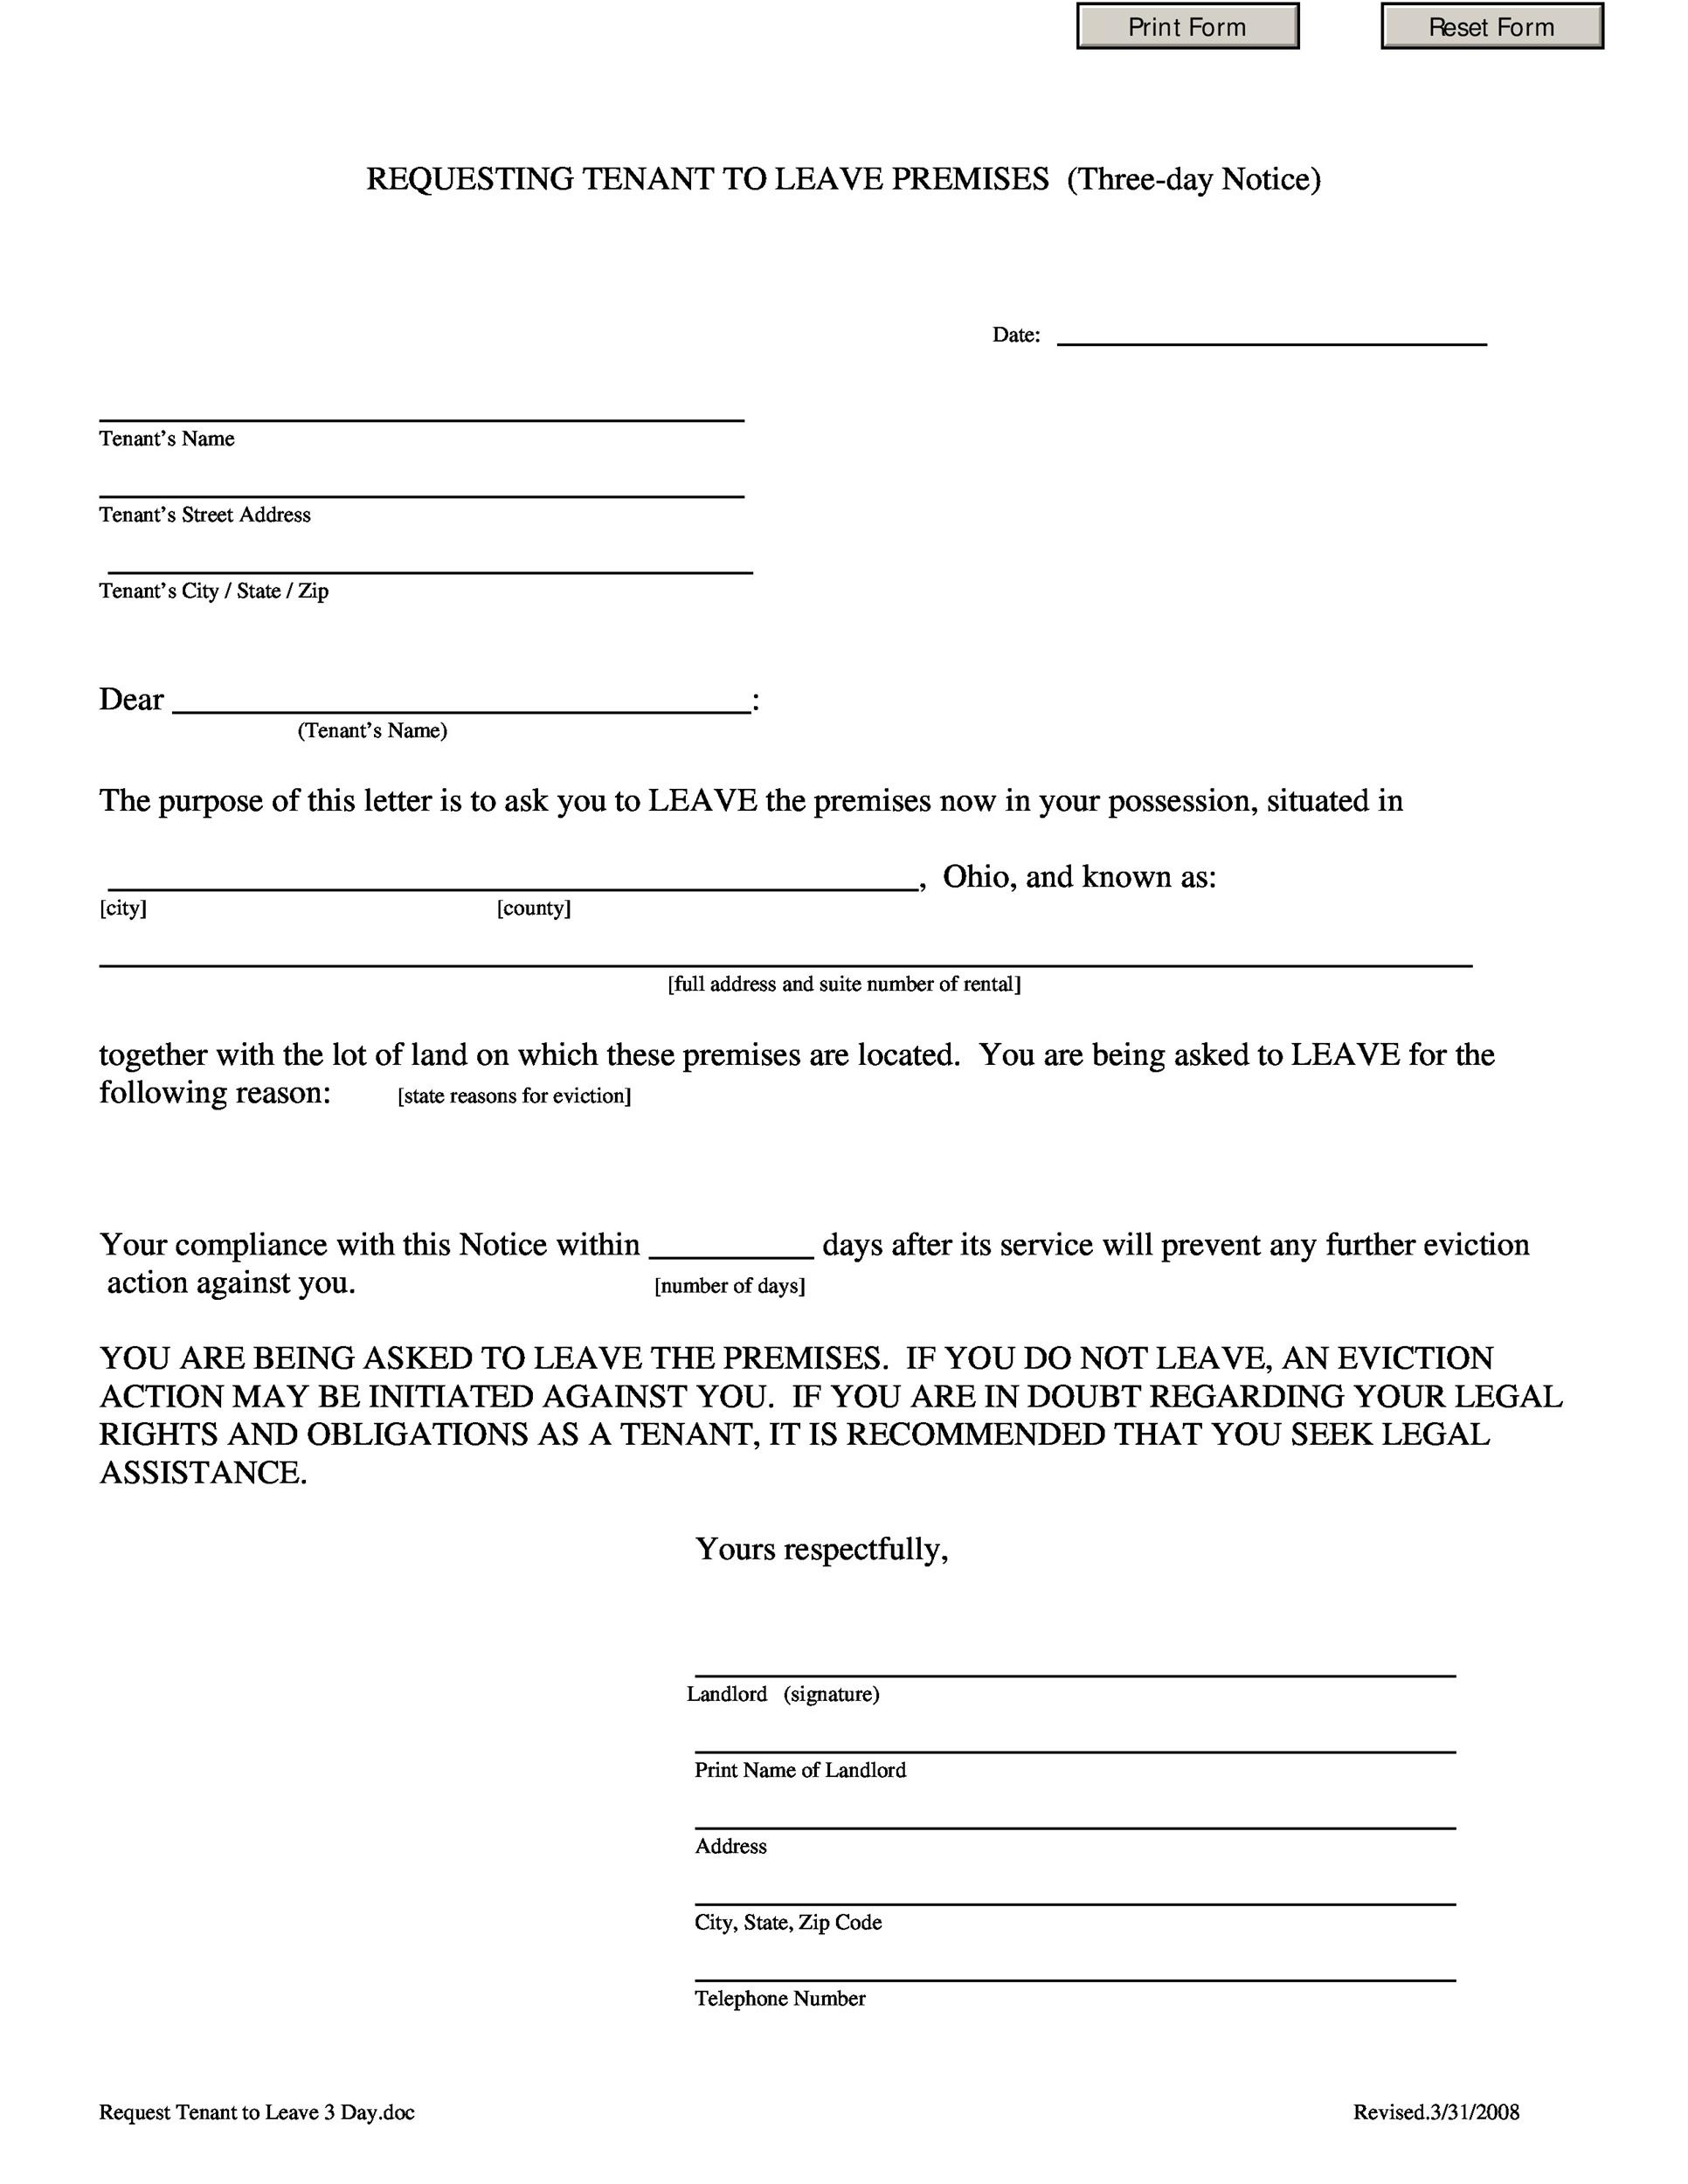 Free Requesting Tenant To Leave Premises